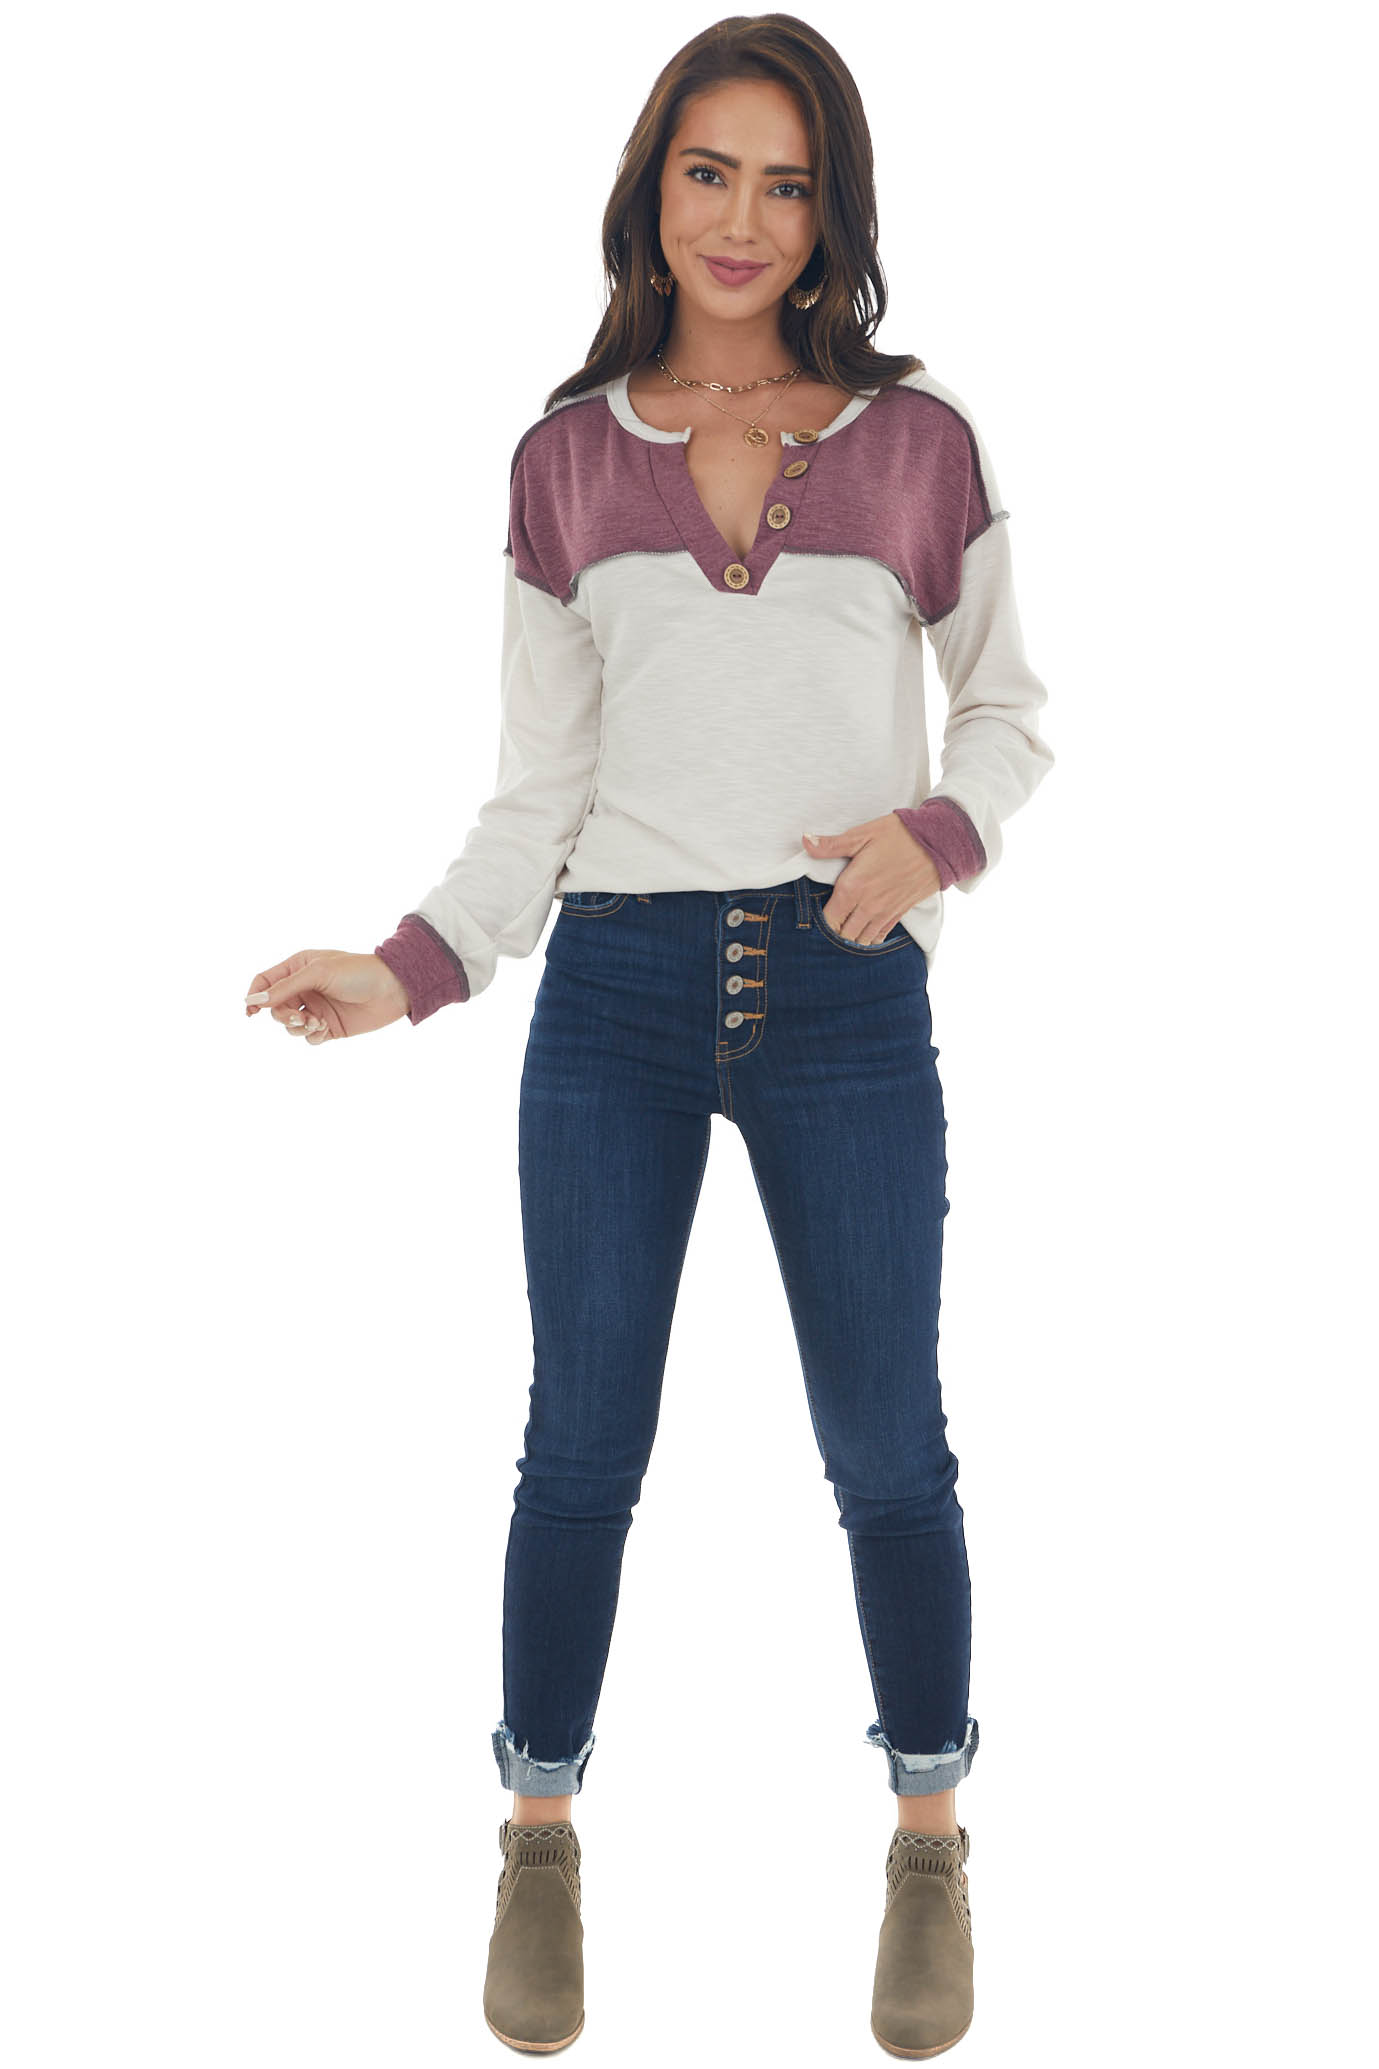 Boysenberry and Cream Button Detailed Knit Top